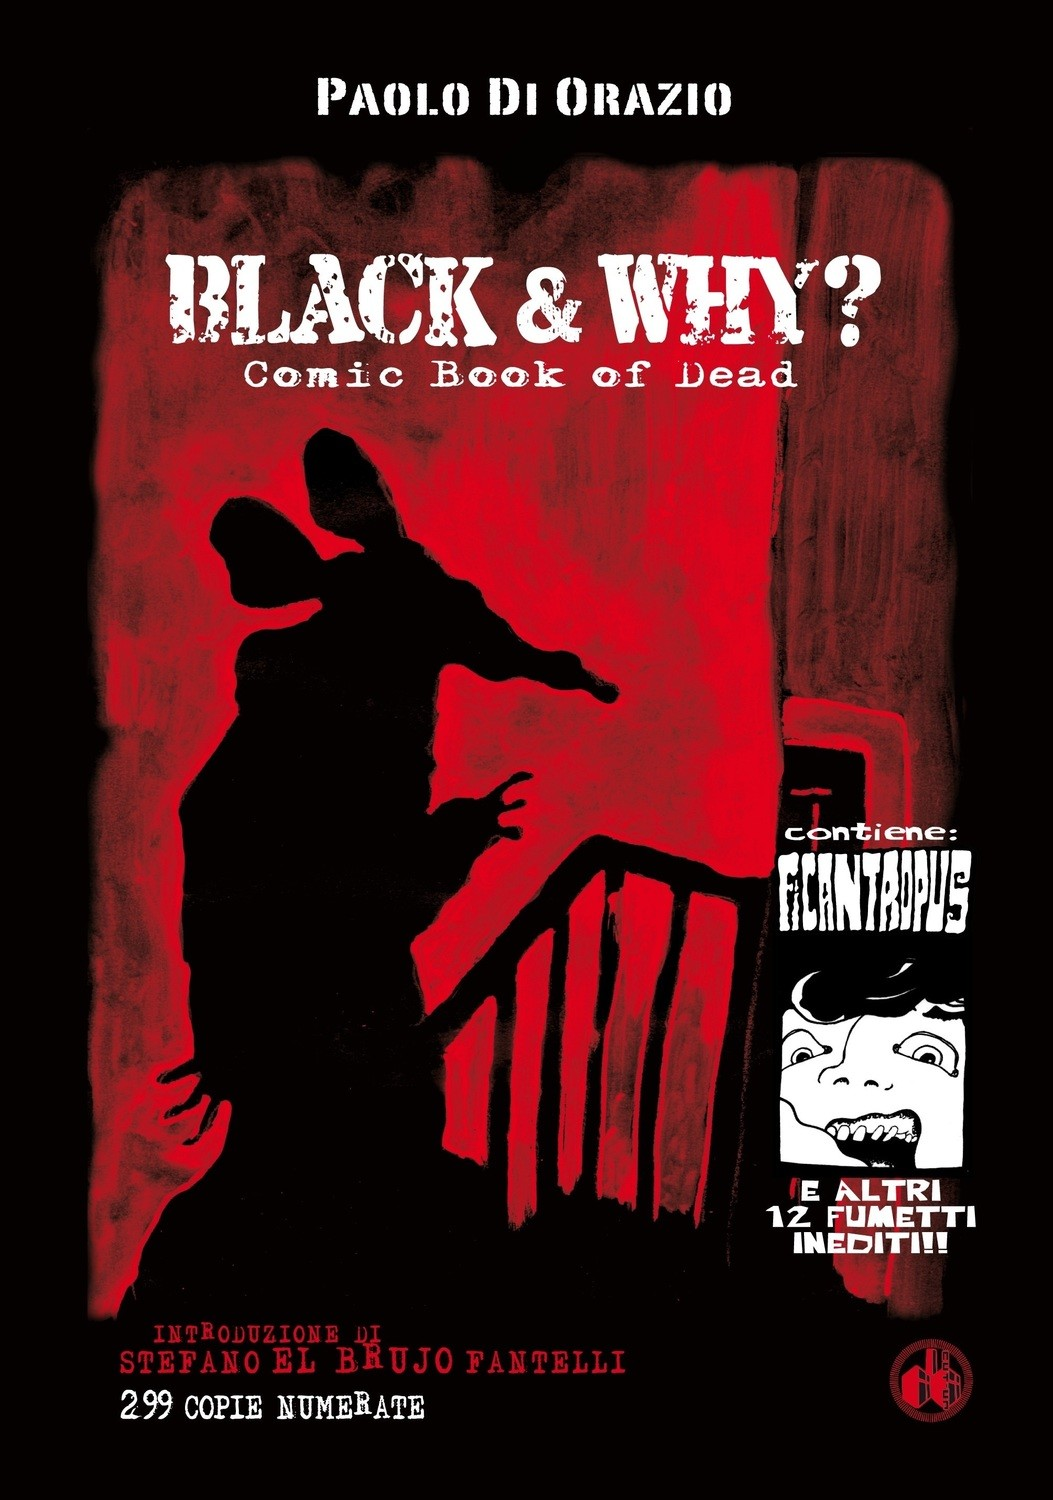 """BLACK AND WHY? – Comic Book Of Dead"" di Paolo Di Orazio - 299 copie numerate - SPEDIZIONE GRATUITA"